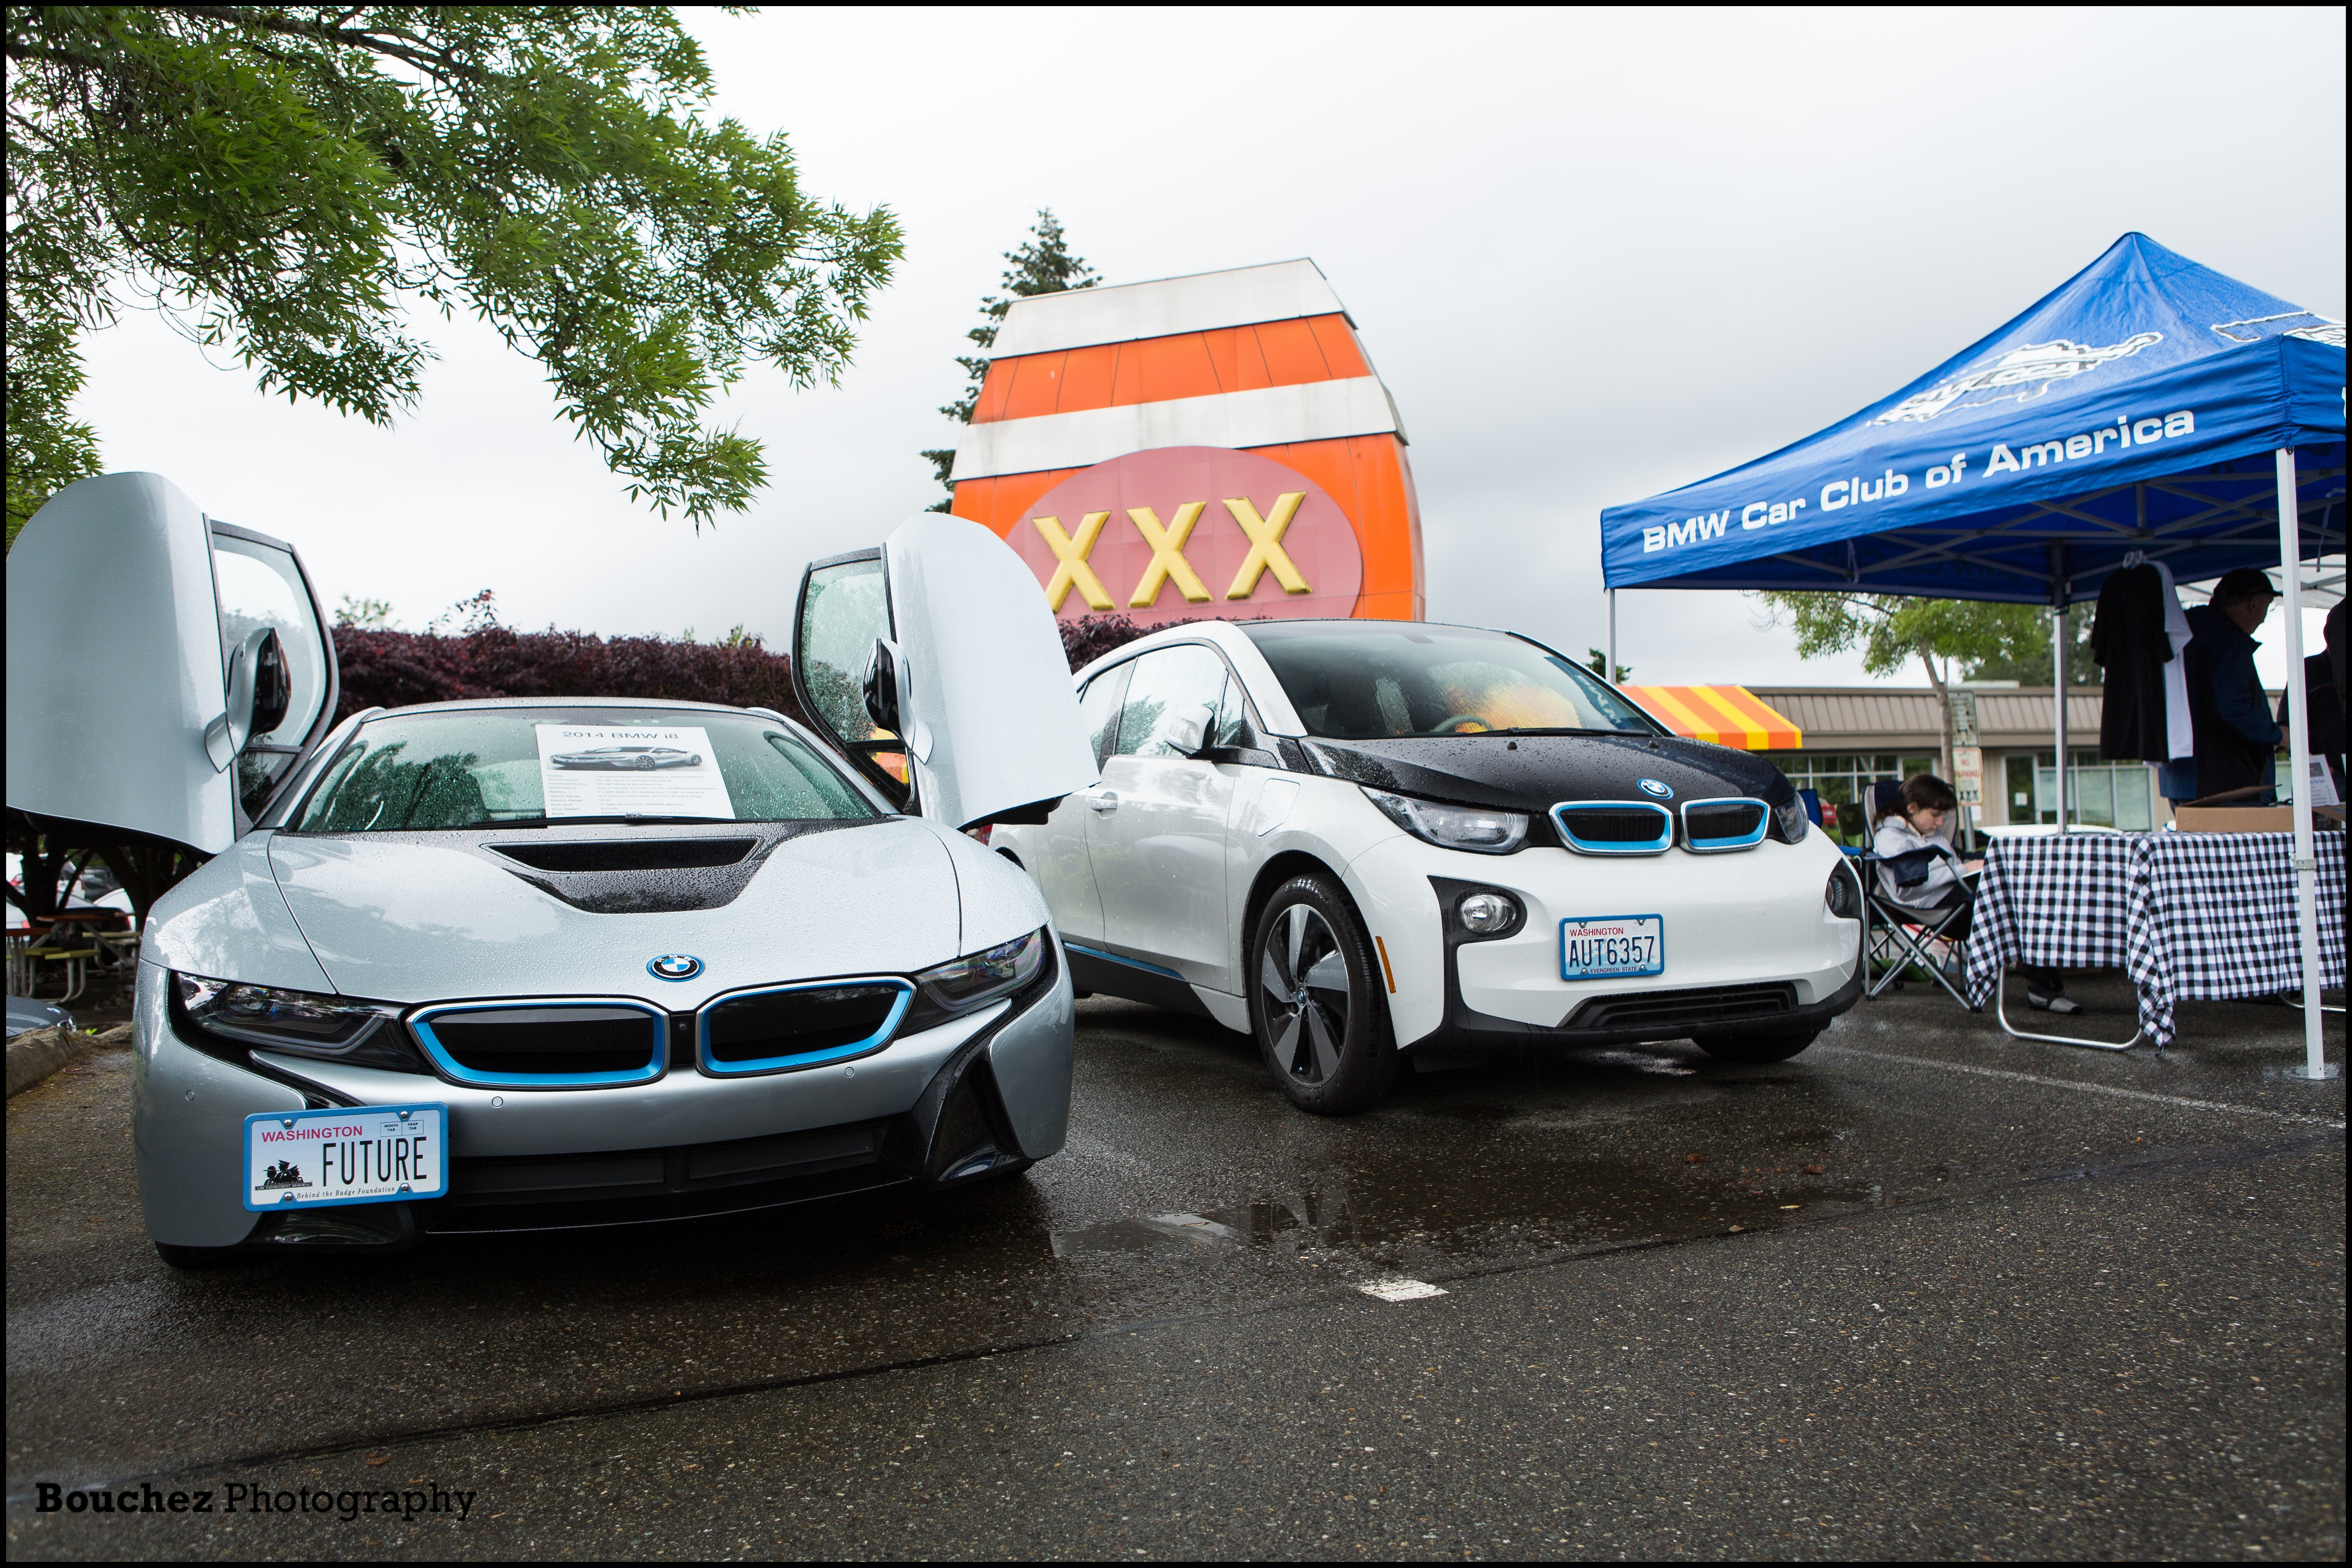 Your Pu Sound Region BMW Car Club will hold the 9th Annual Burgers & BMWs gathering at the Issaquah Triple X Root Beer Drive In on Sunday May 27th